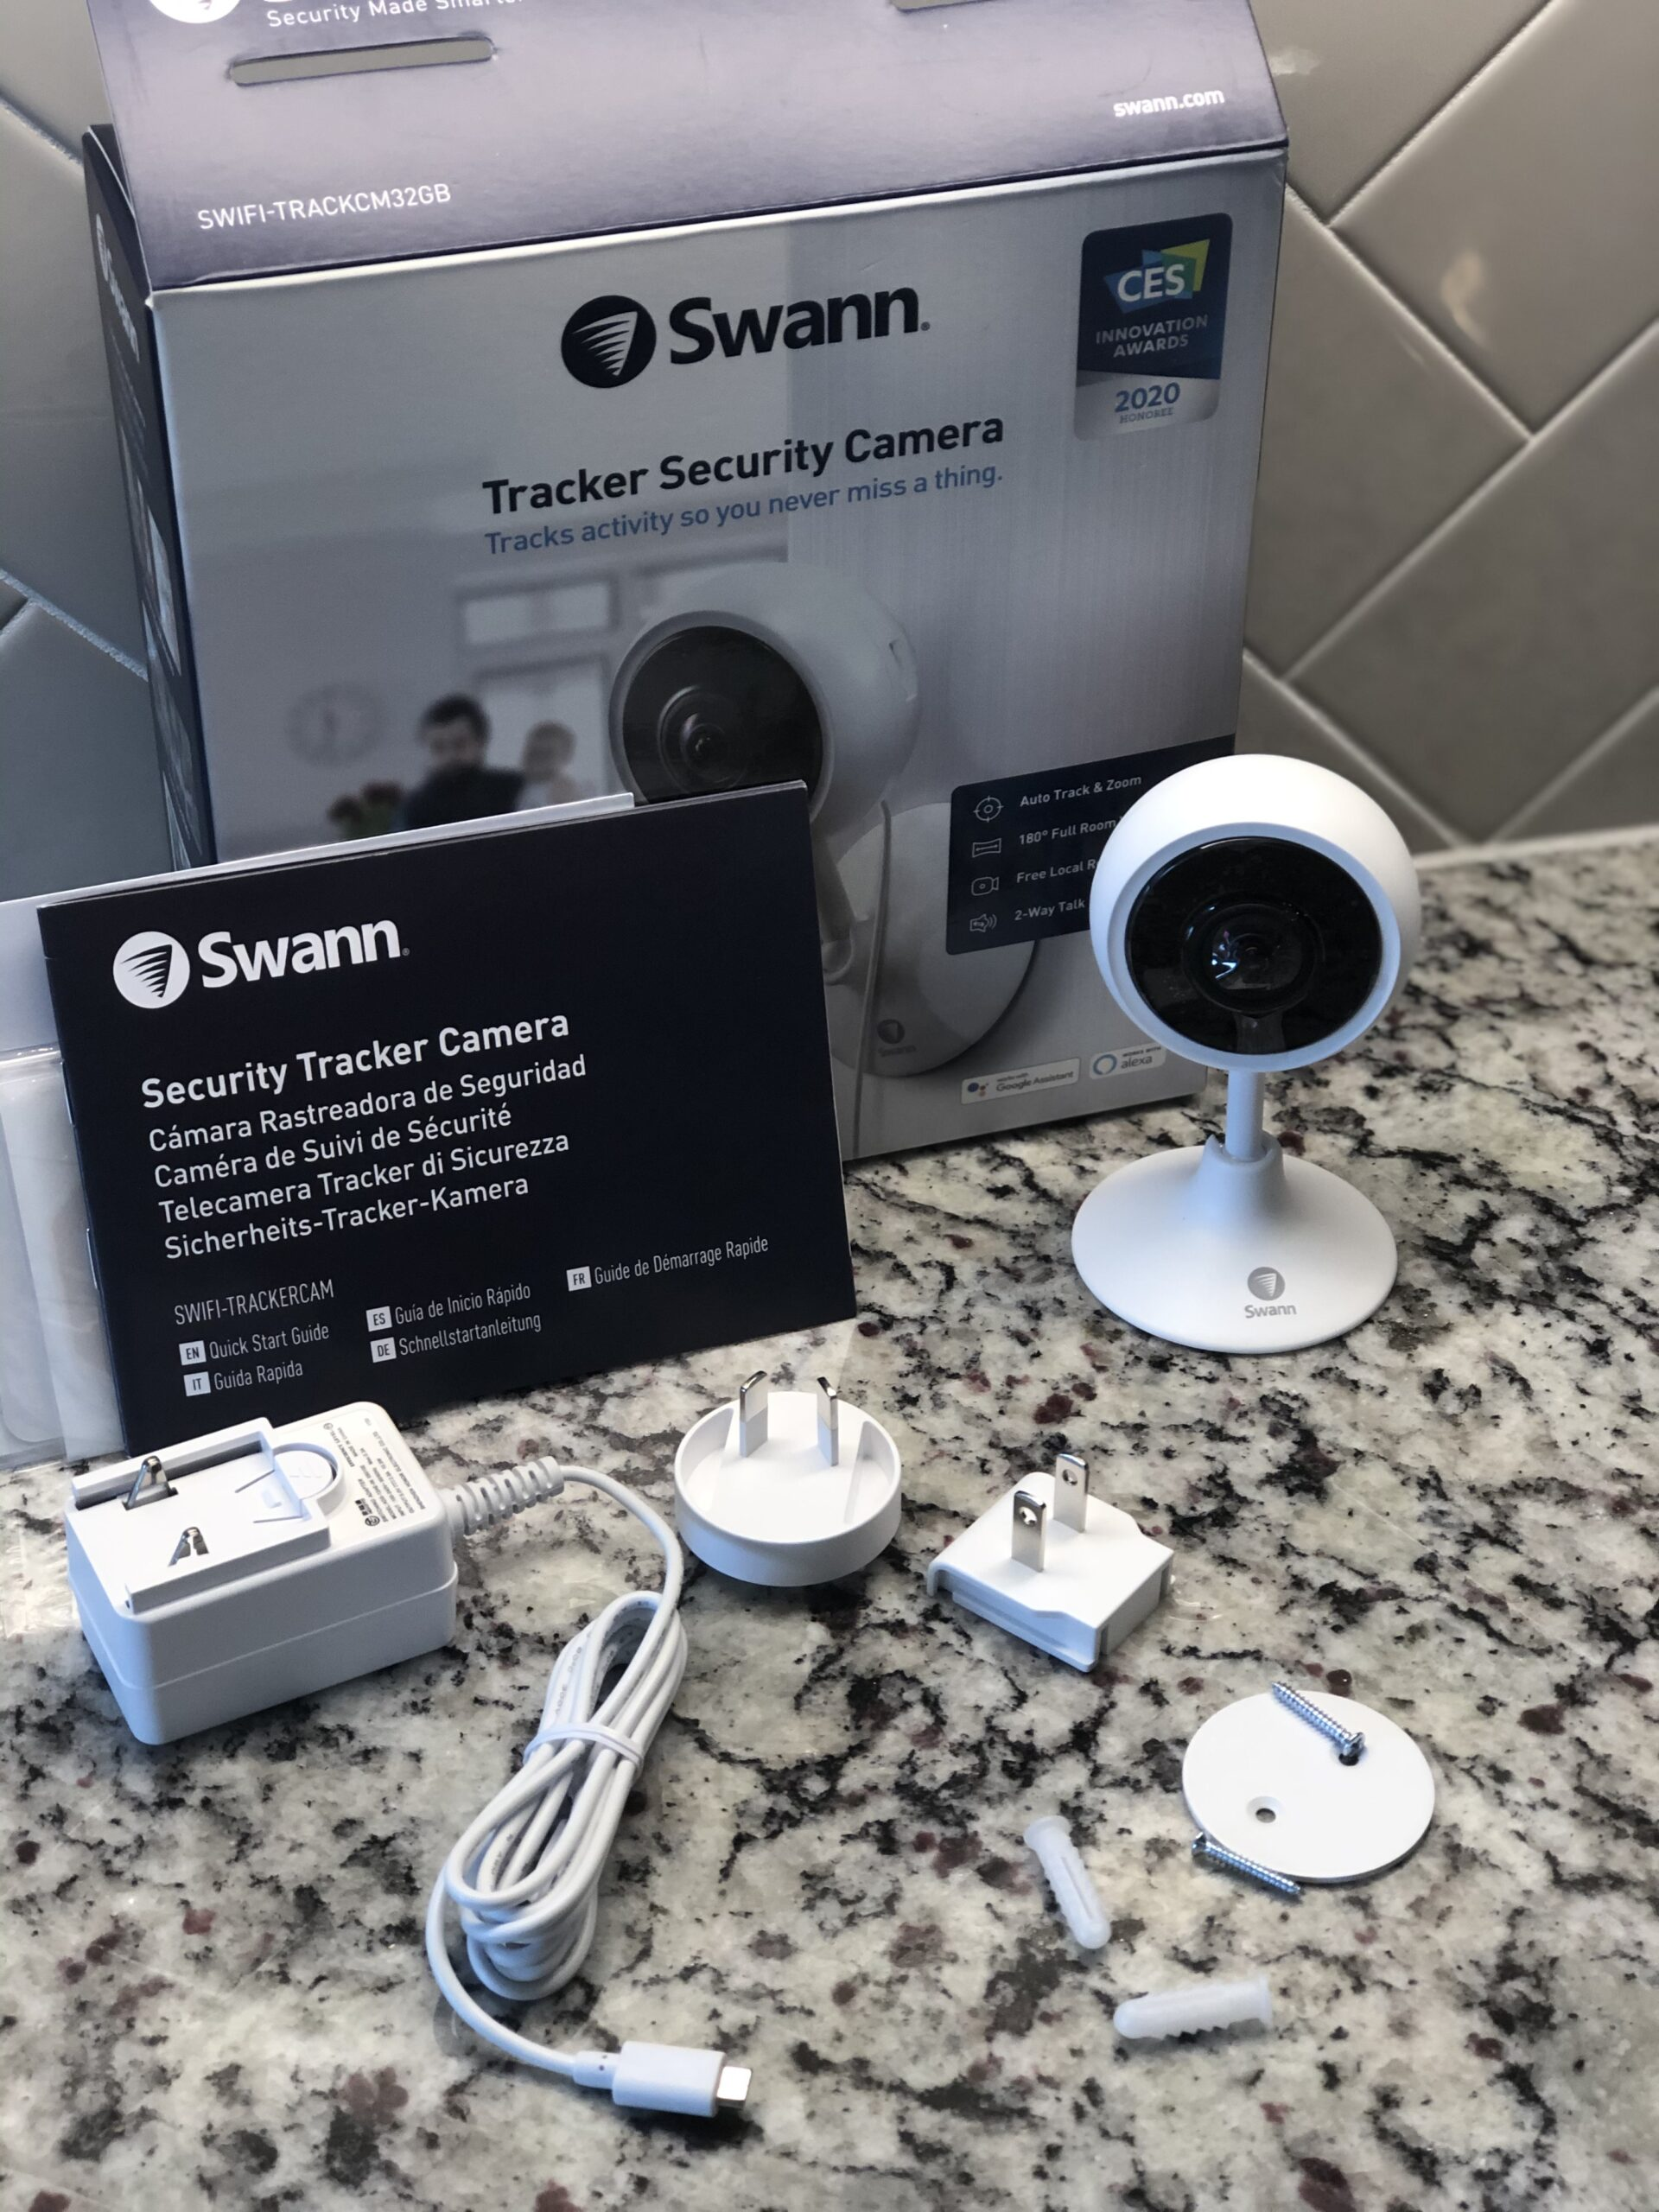 Swann WiFi Tracker Camera